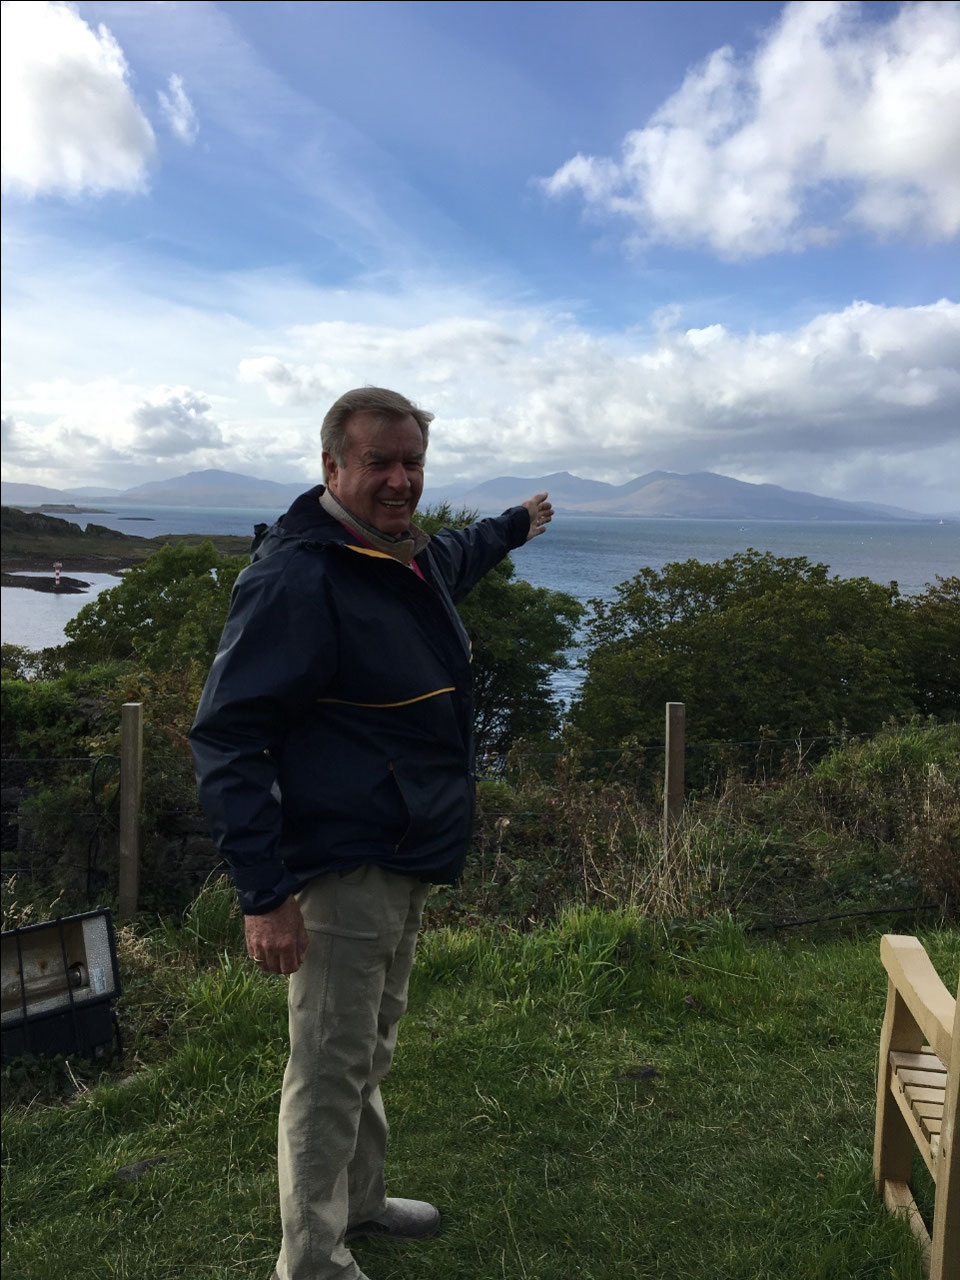 Kier pointing to his homeland - Isle of Mull